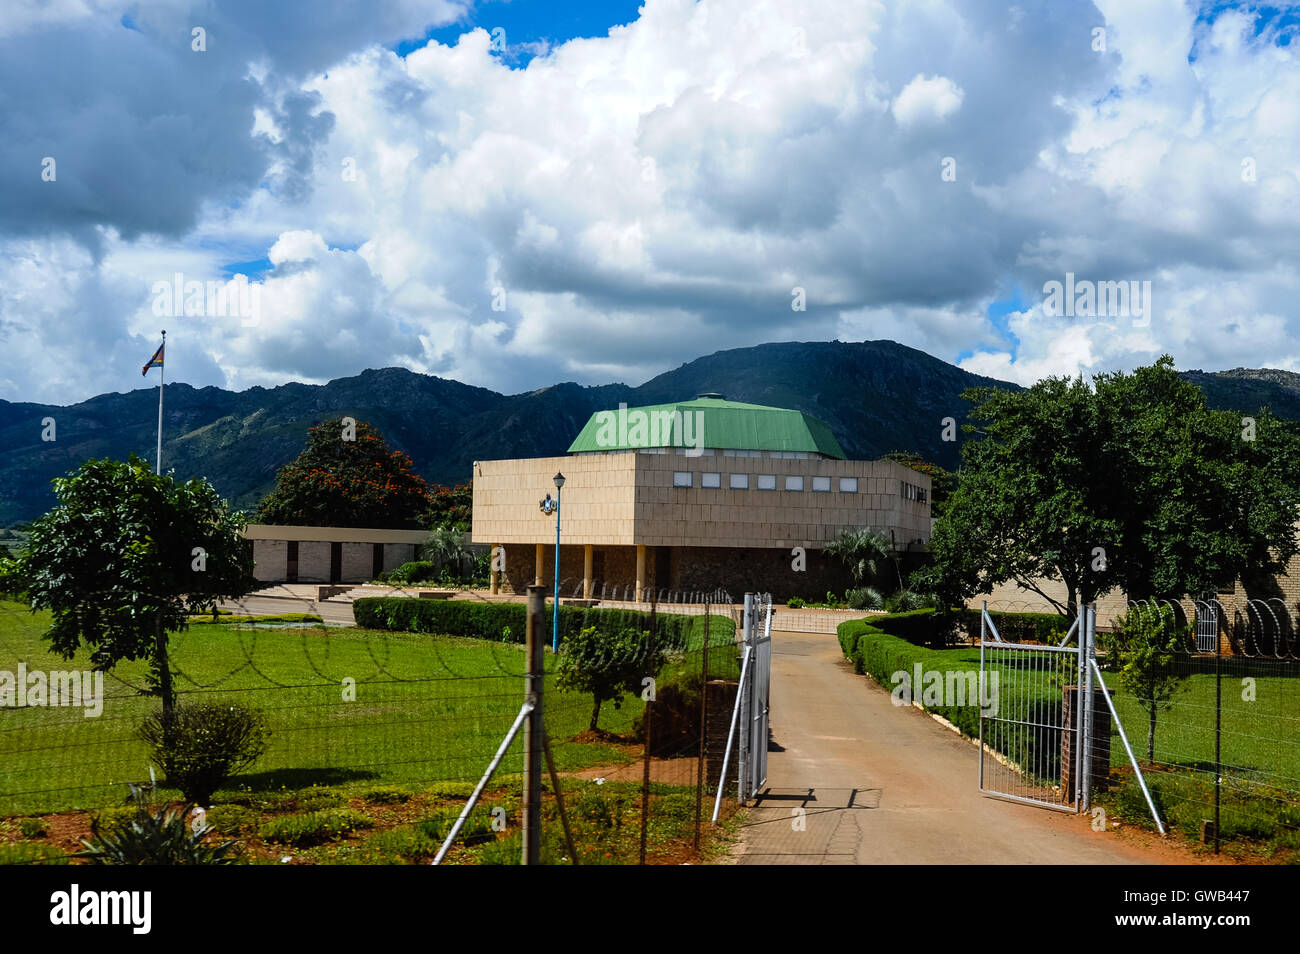 The Parliament in Mbabane, the capital and largest city of Swaziland. The Kingdom of Swaziland in Southern Africa, Stock Photo